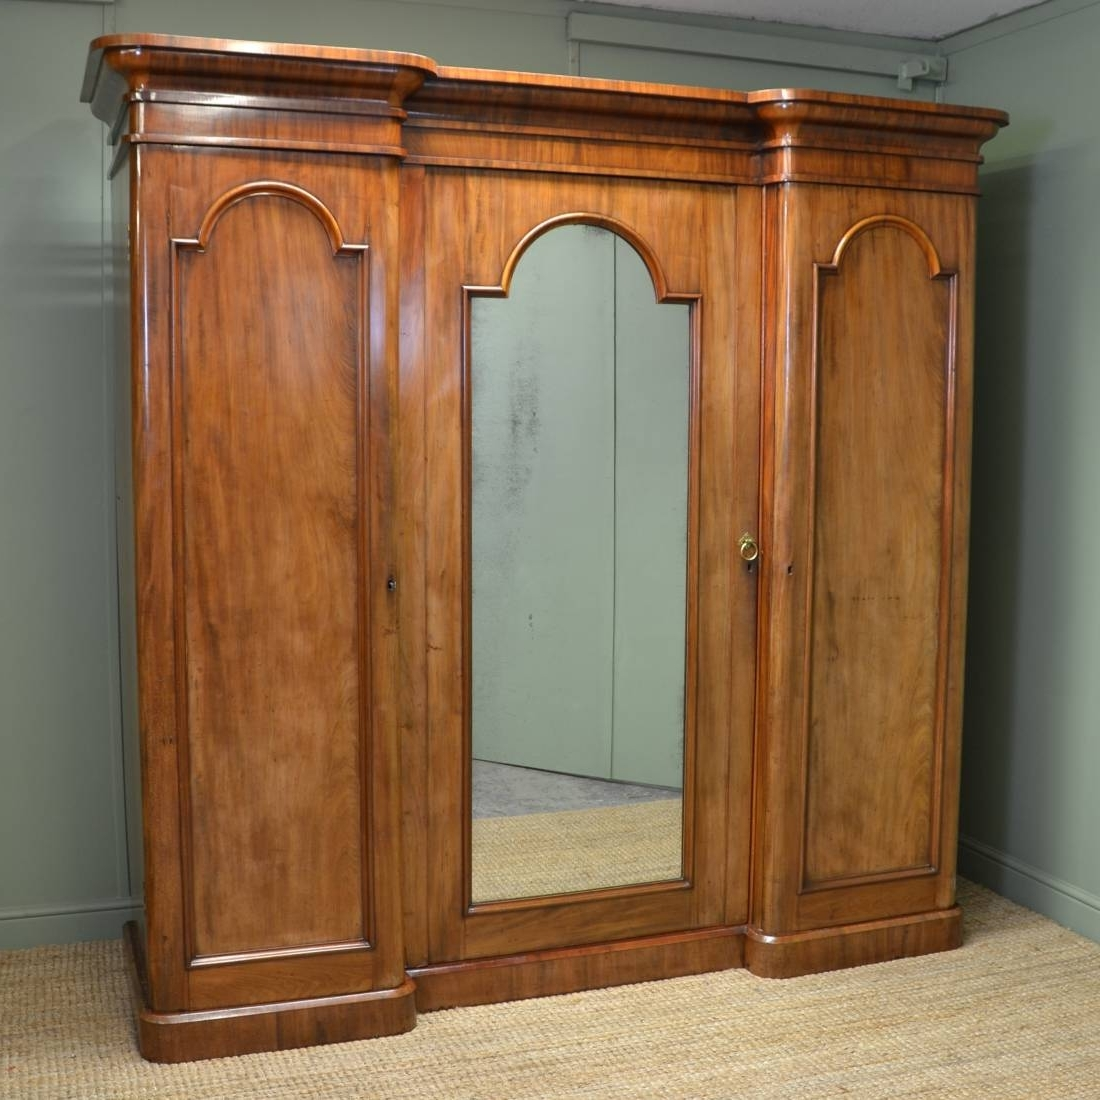 Antique Breakfront Wardrobes Inside Fashionable Large Victorian Mahogany Antique Triple Wardrobe – Antiques World (View 6 of 15)